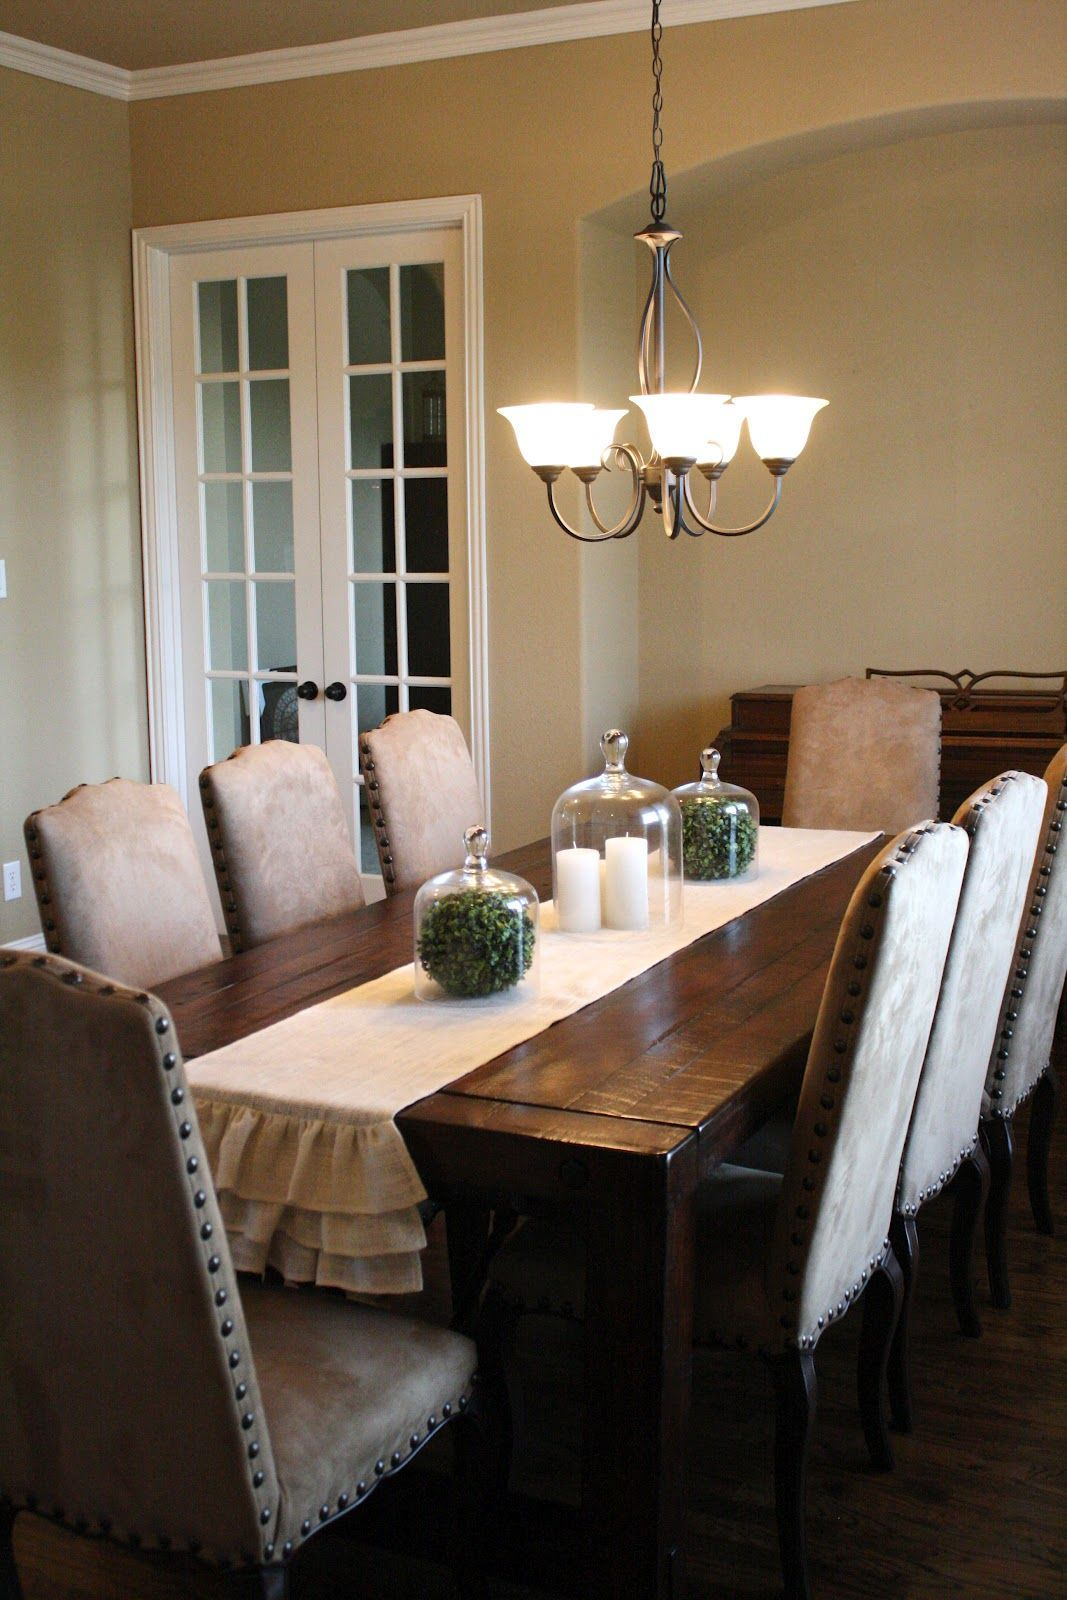 Pin By Zoilamagaly On Home Decorations Ashley Dining Room Dining Table Decor Dining Decor